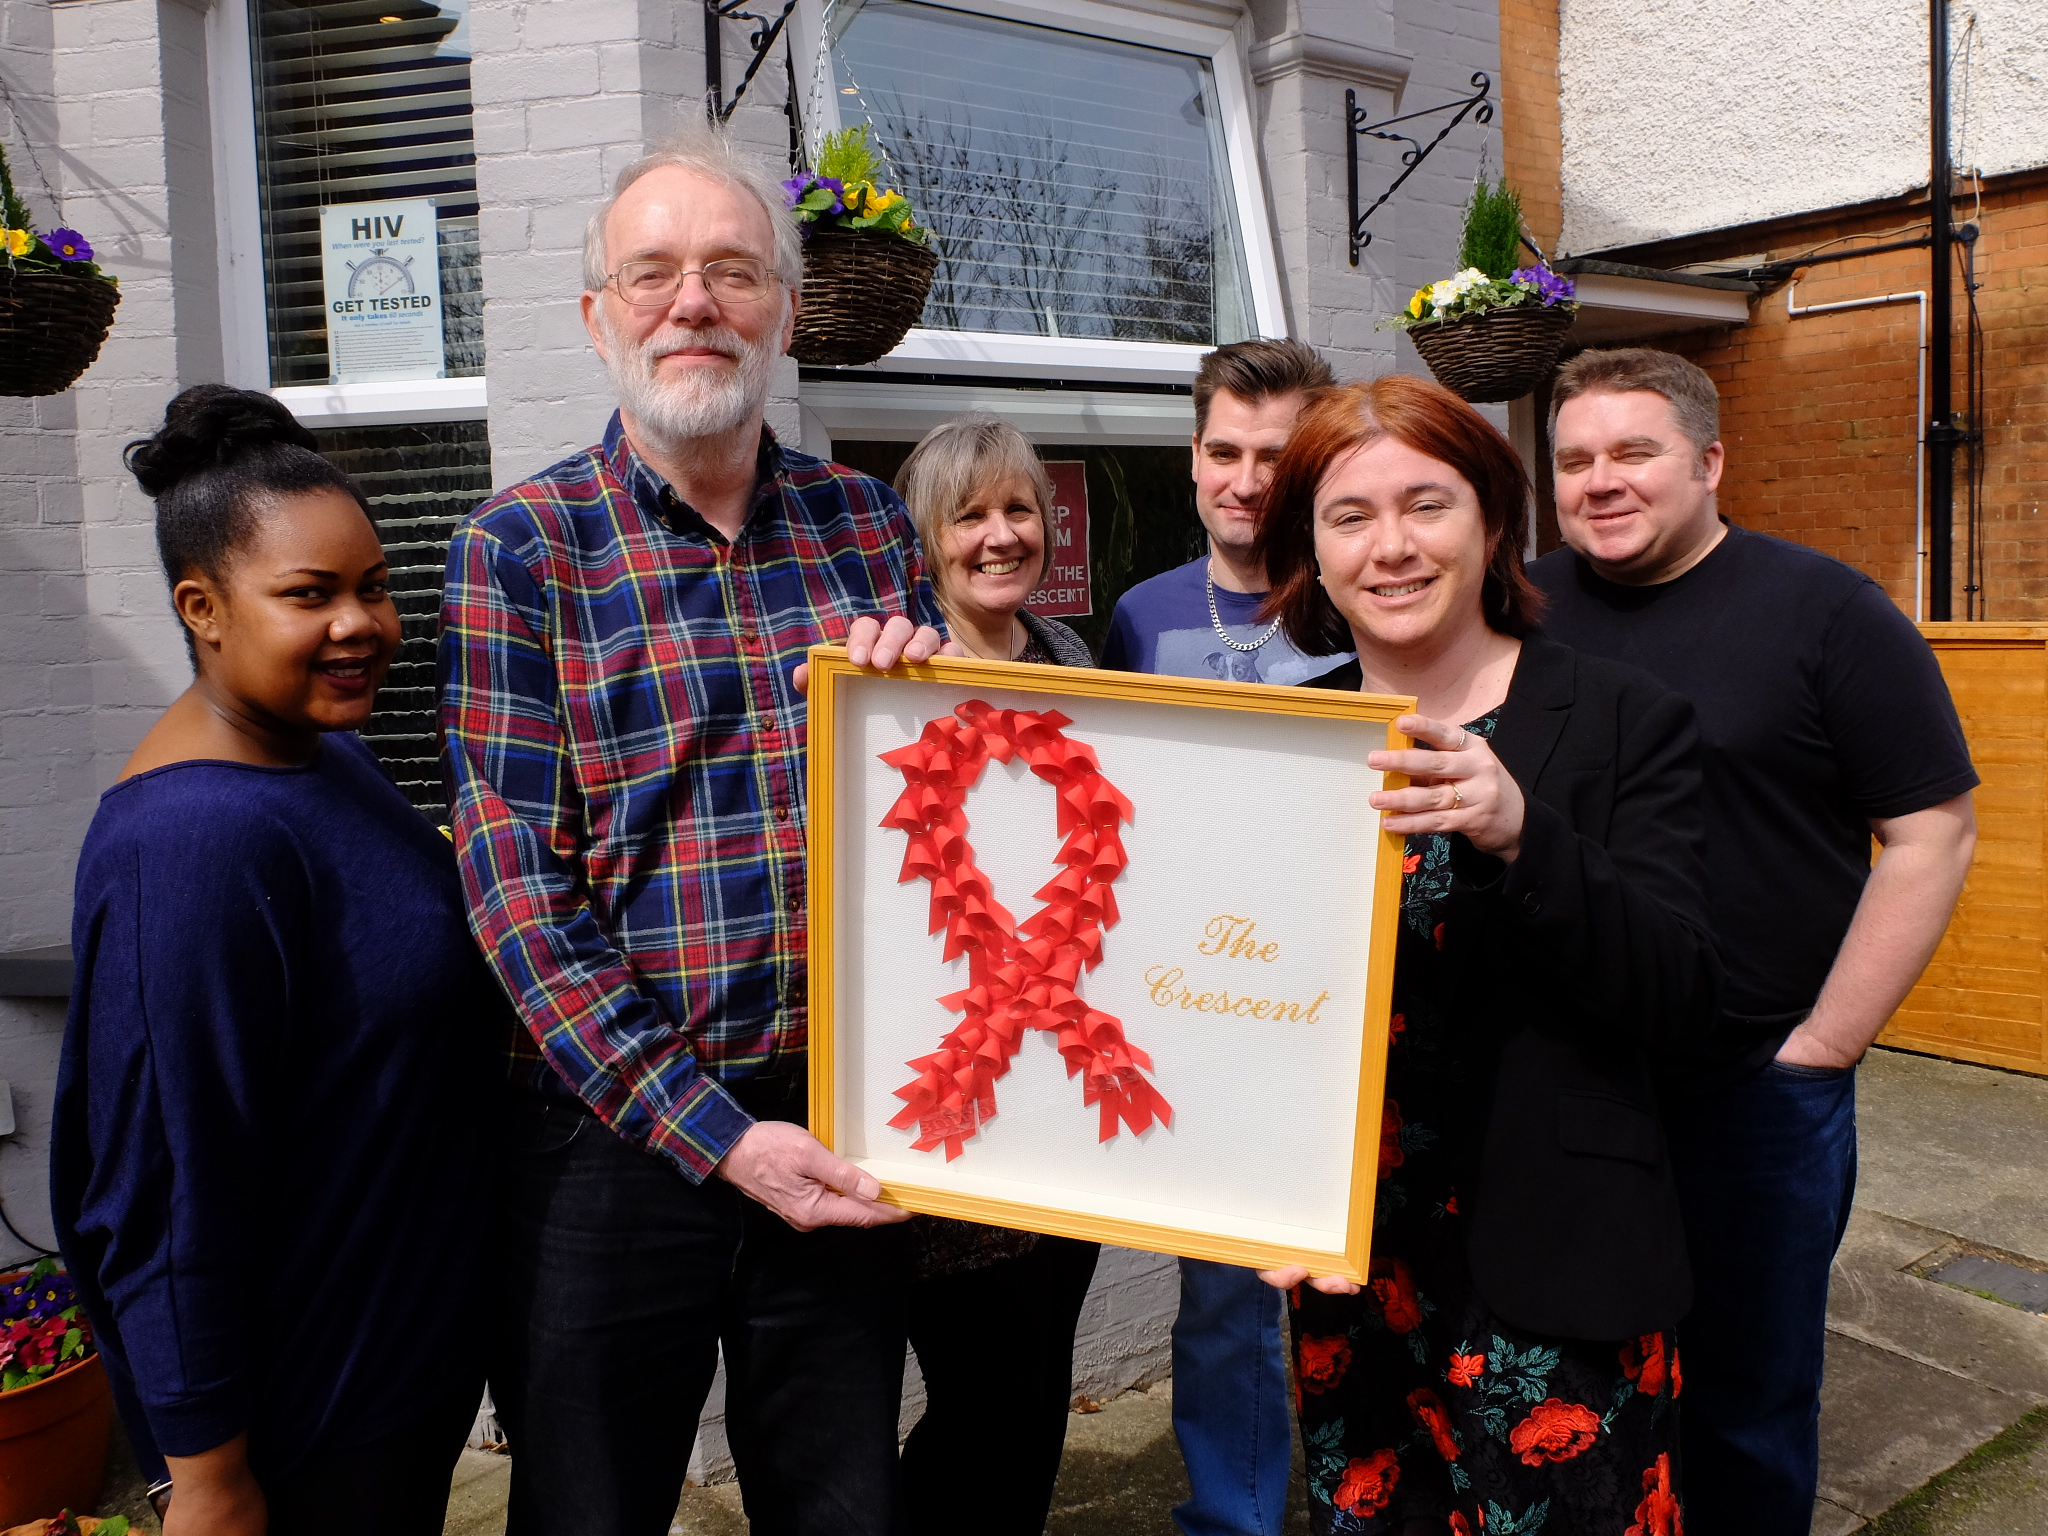 Hertfordshire MEP launches HIV charity for World Health Day